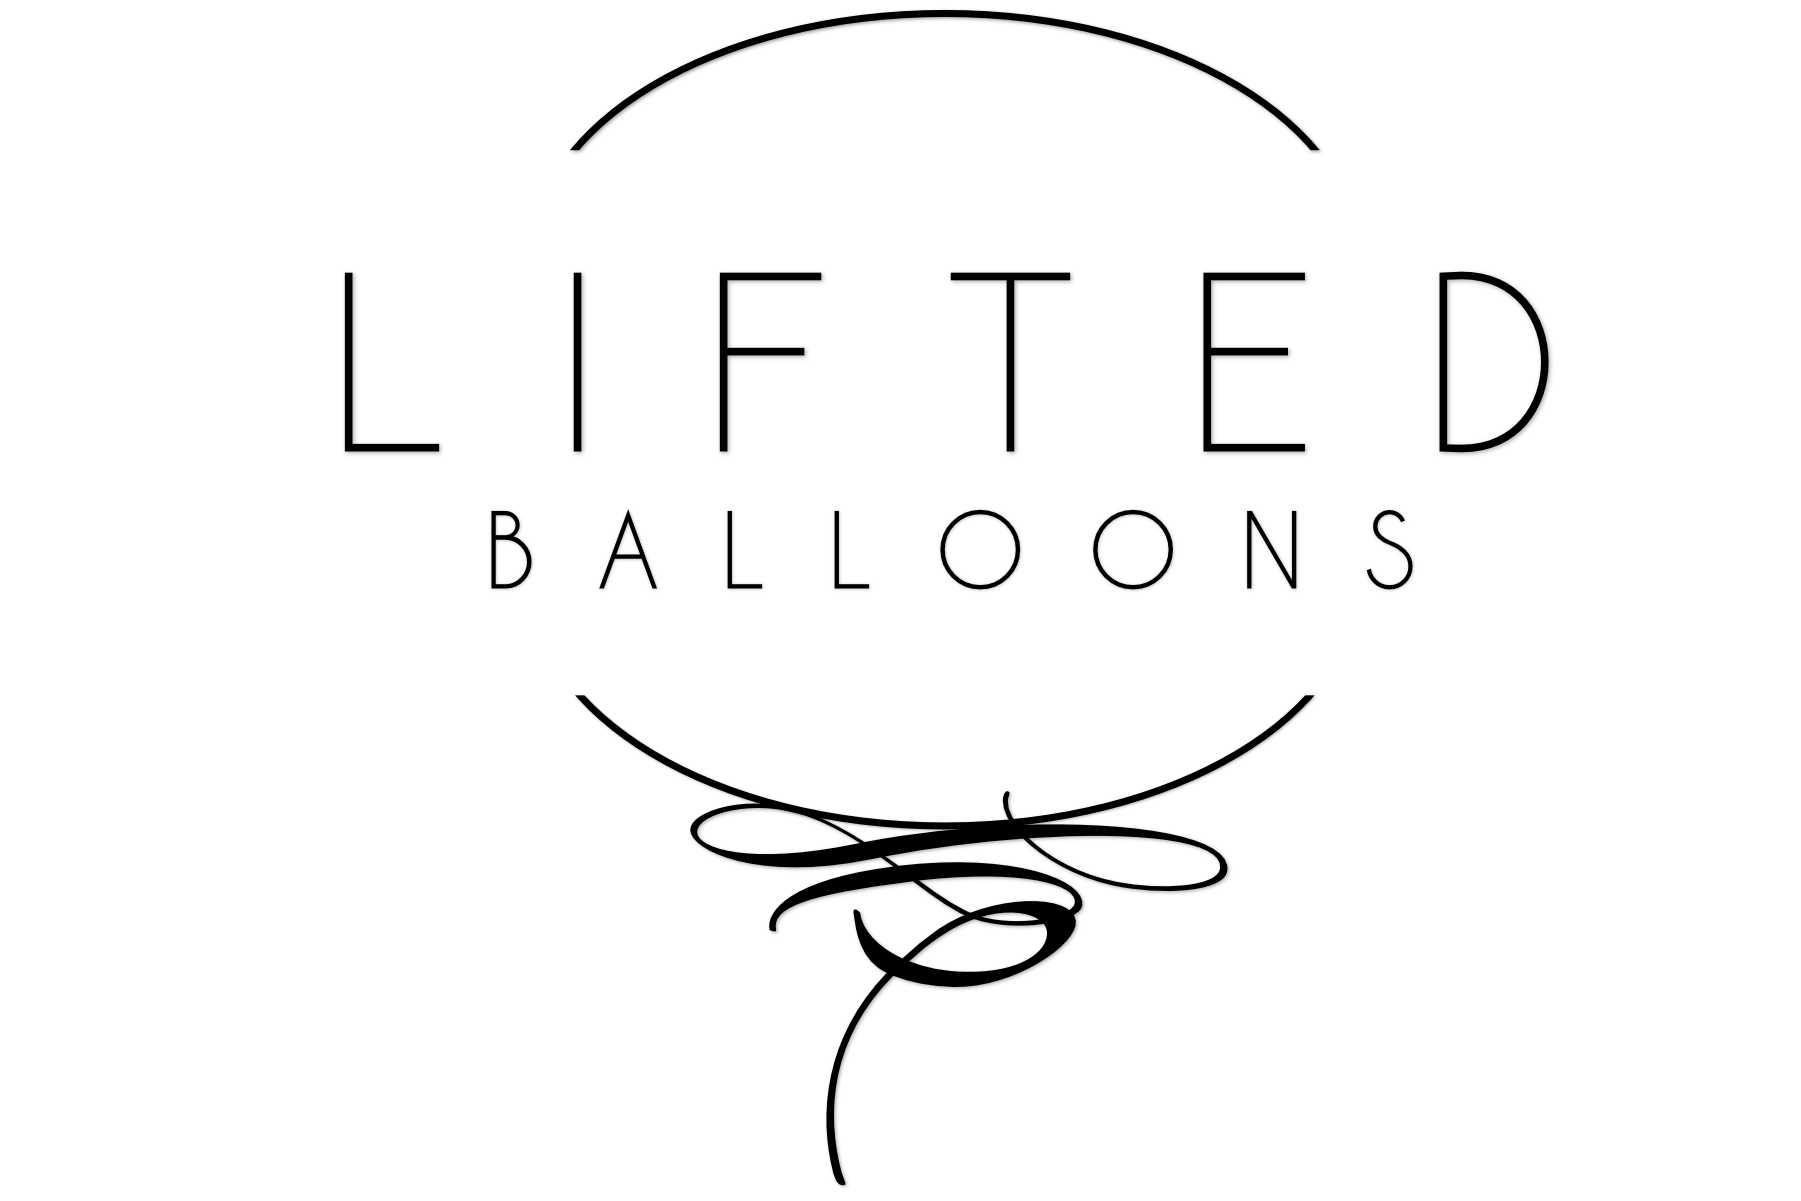 LIFTED.BALLOON passion project hq kimberly saquing nicole gilmore giant balloons logo design brand design website design.png